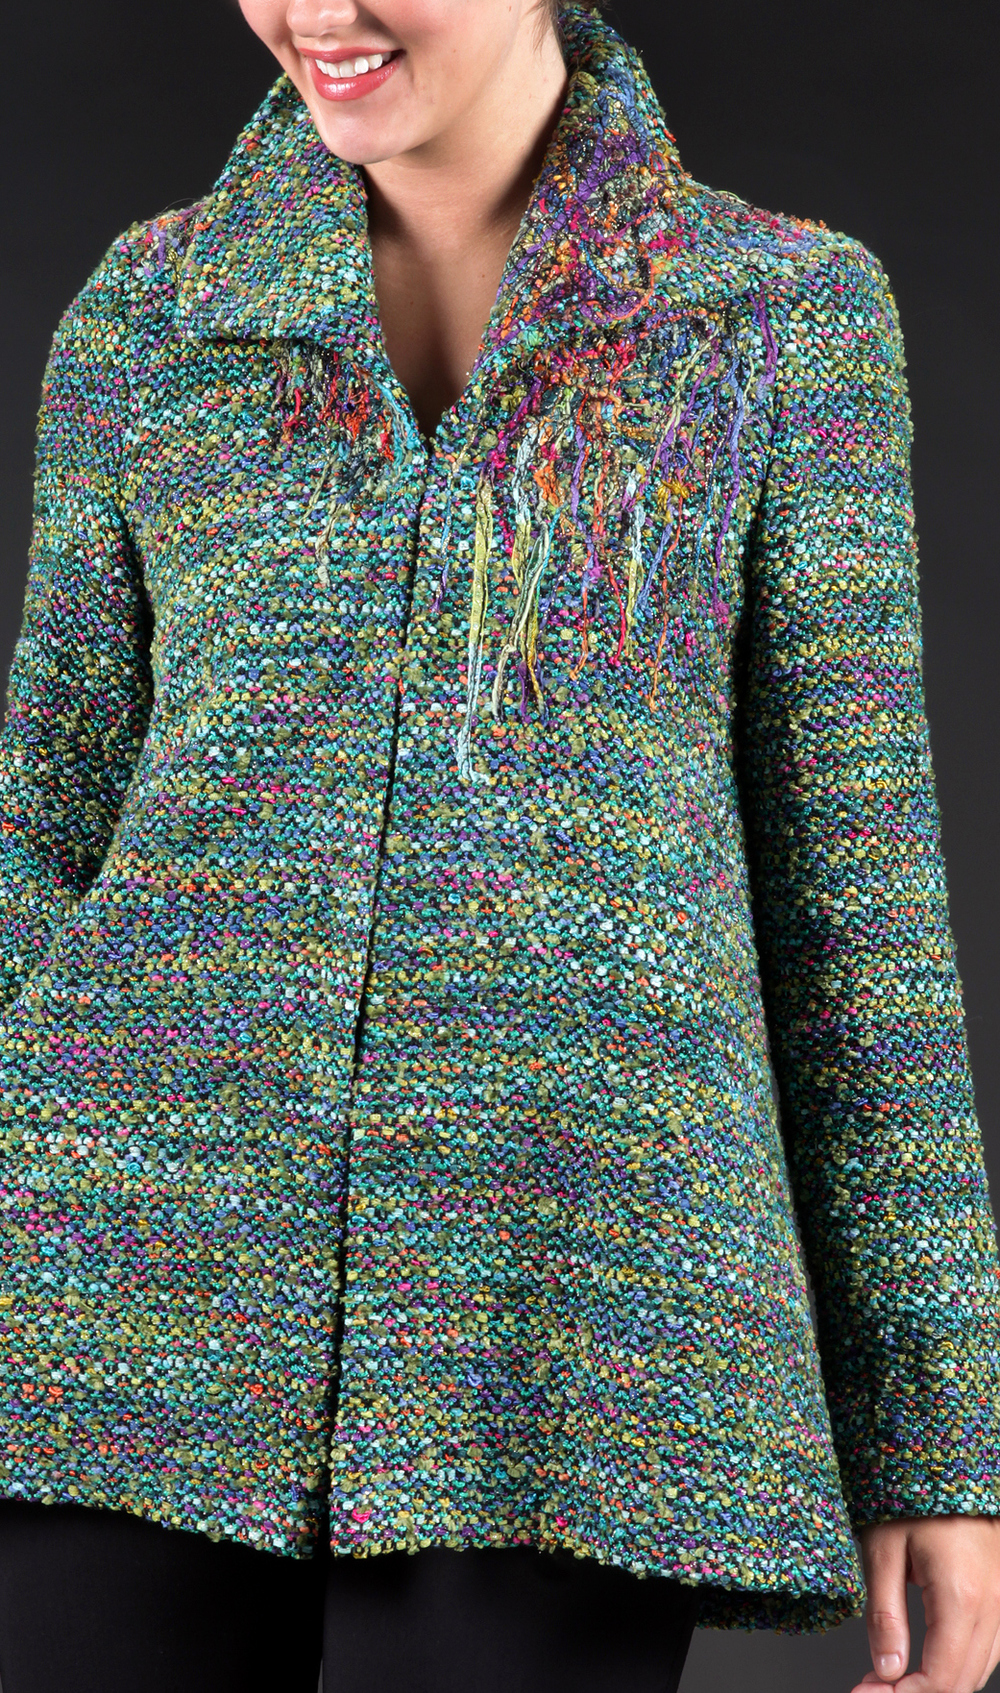 Handwoven Coat, Kathleen Weir-West, Business Wear 101